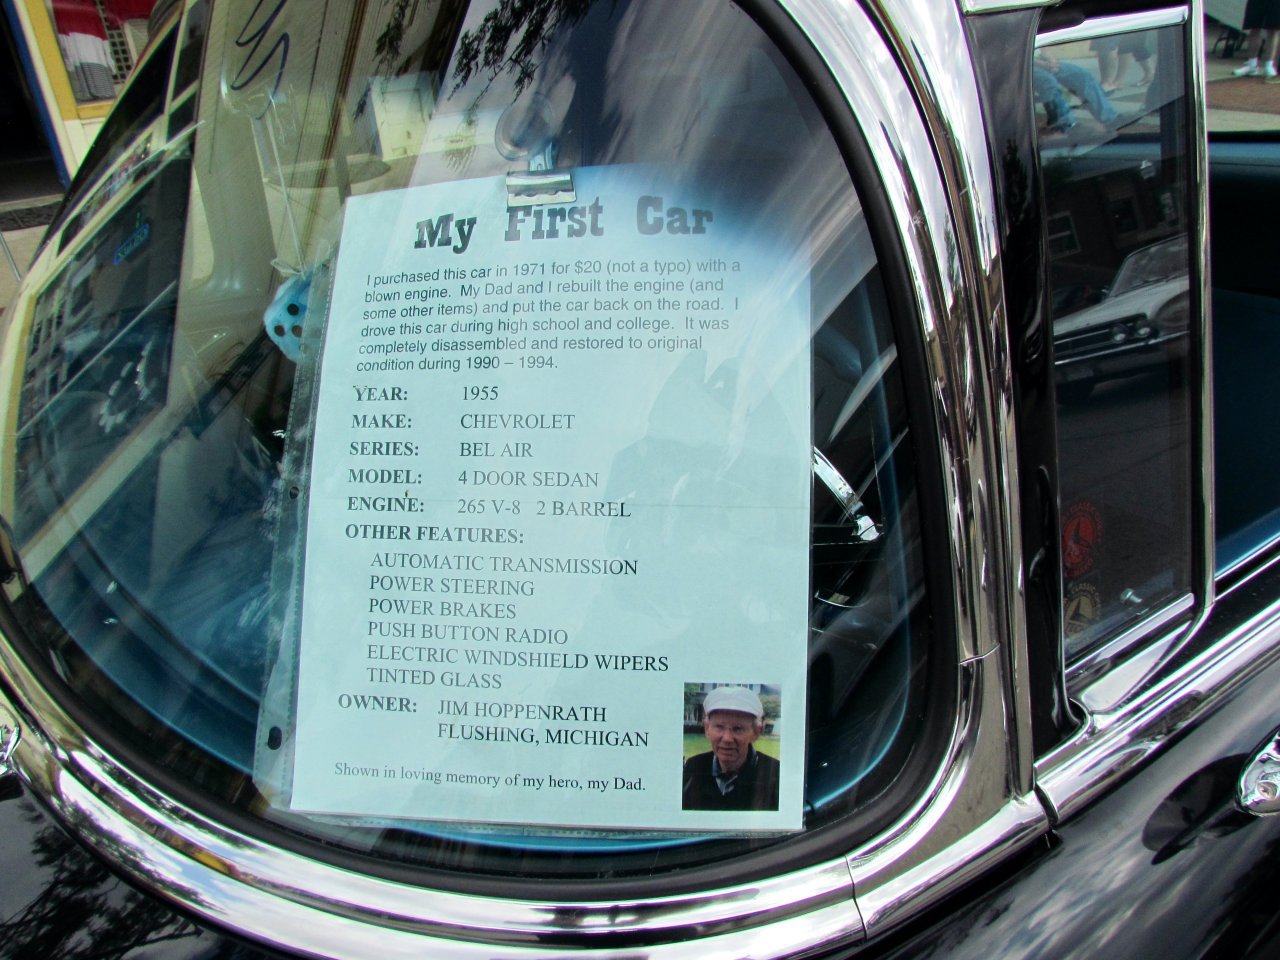 car show, Things to consider when displaying your classic car at a local show, ClassicCars.com Journal